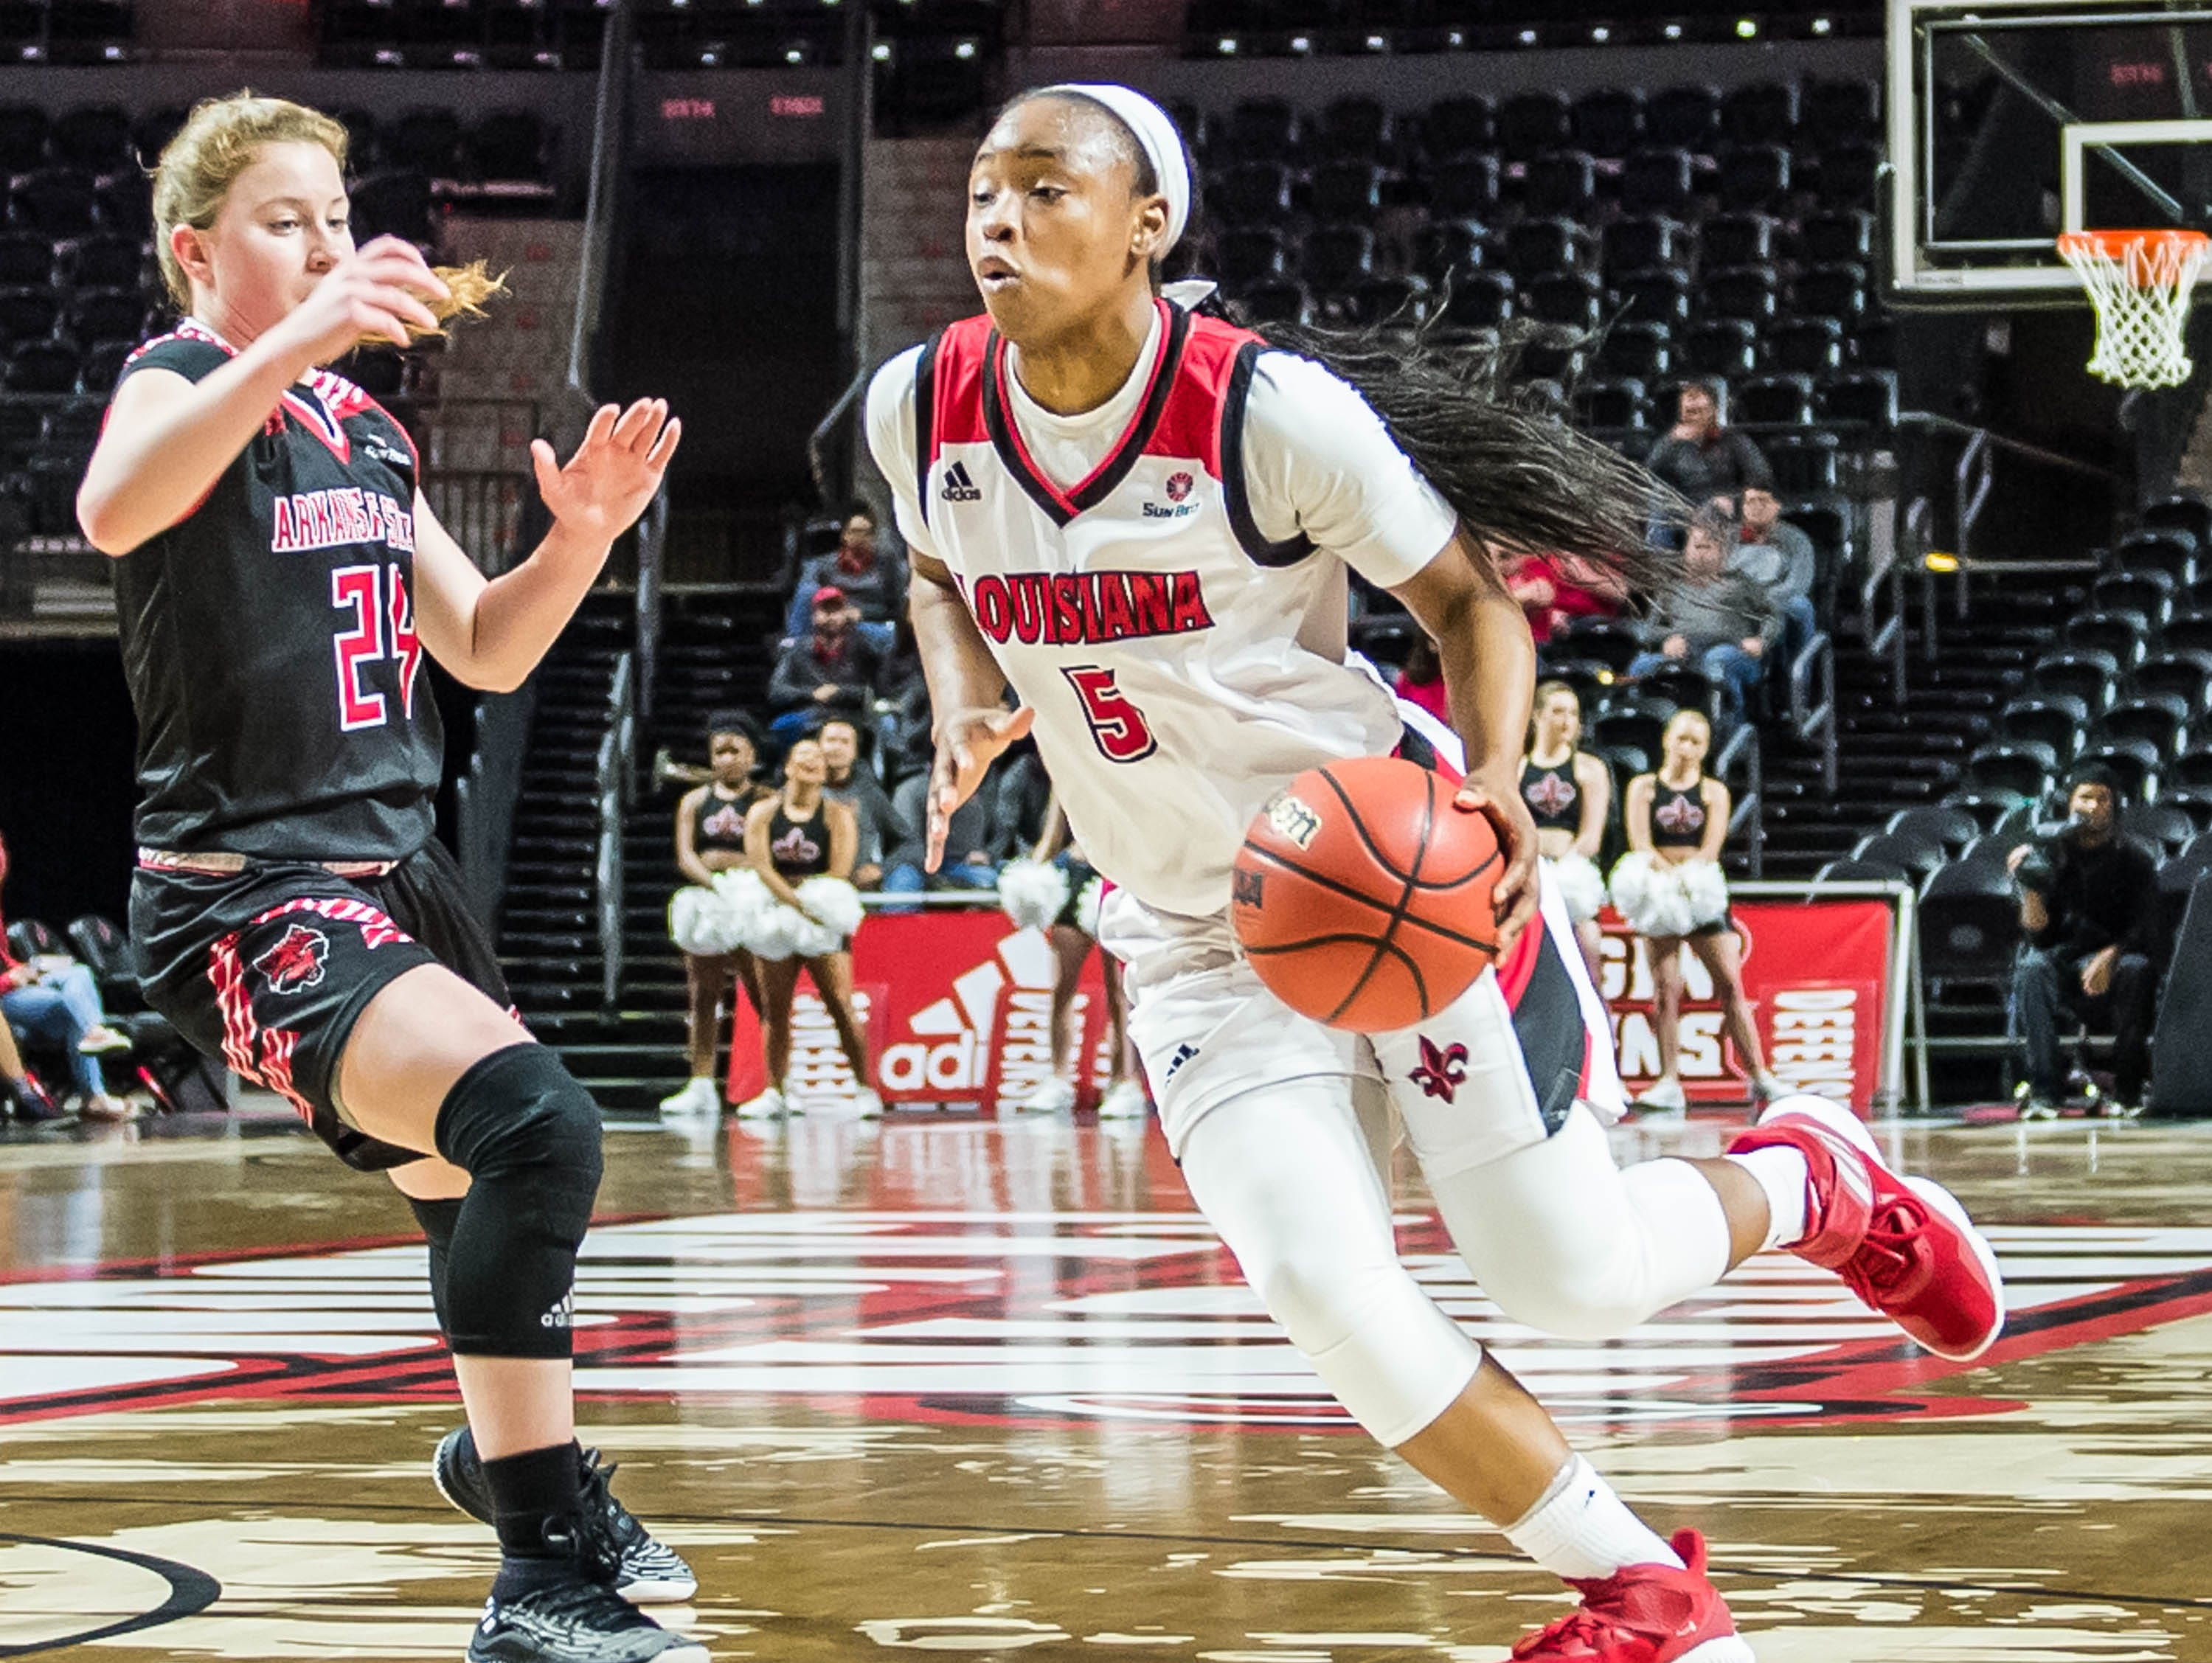 Ragin' Cajuns guard Jomyra Mathis (5) drives with the ball as the Cajuns women's basketball team plays the Arkansas State Red Wolves at the Cajundome on Saturday, March 9, 2019.